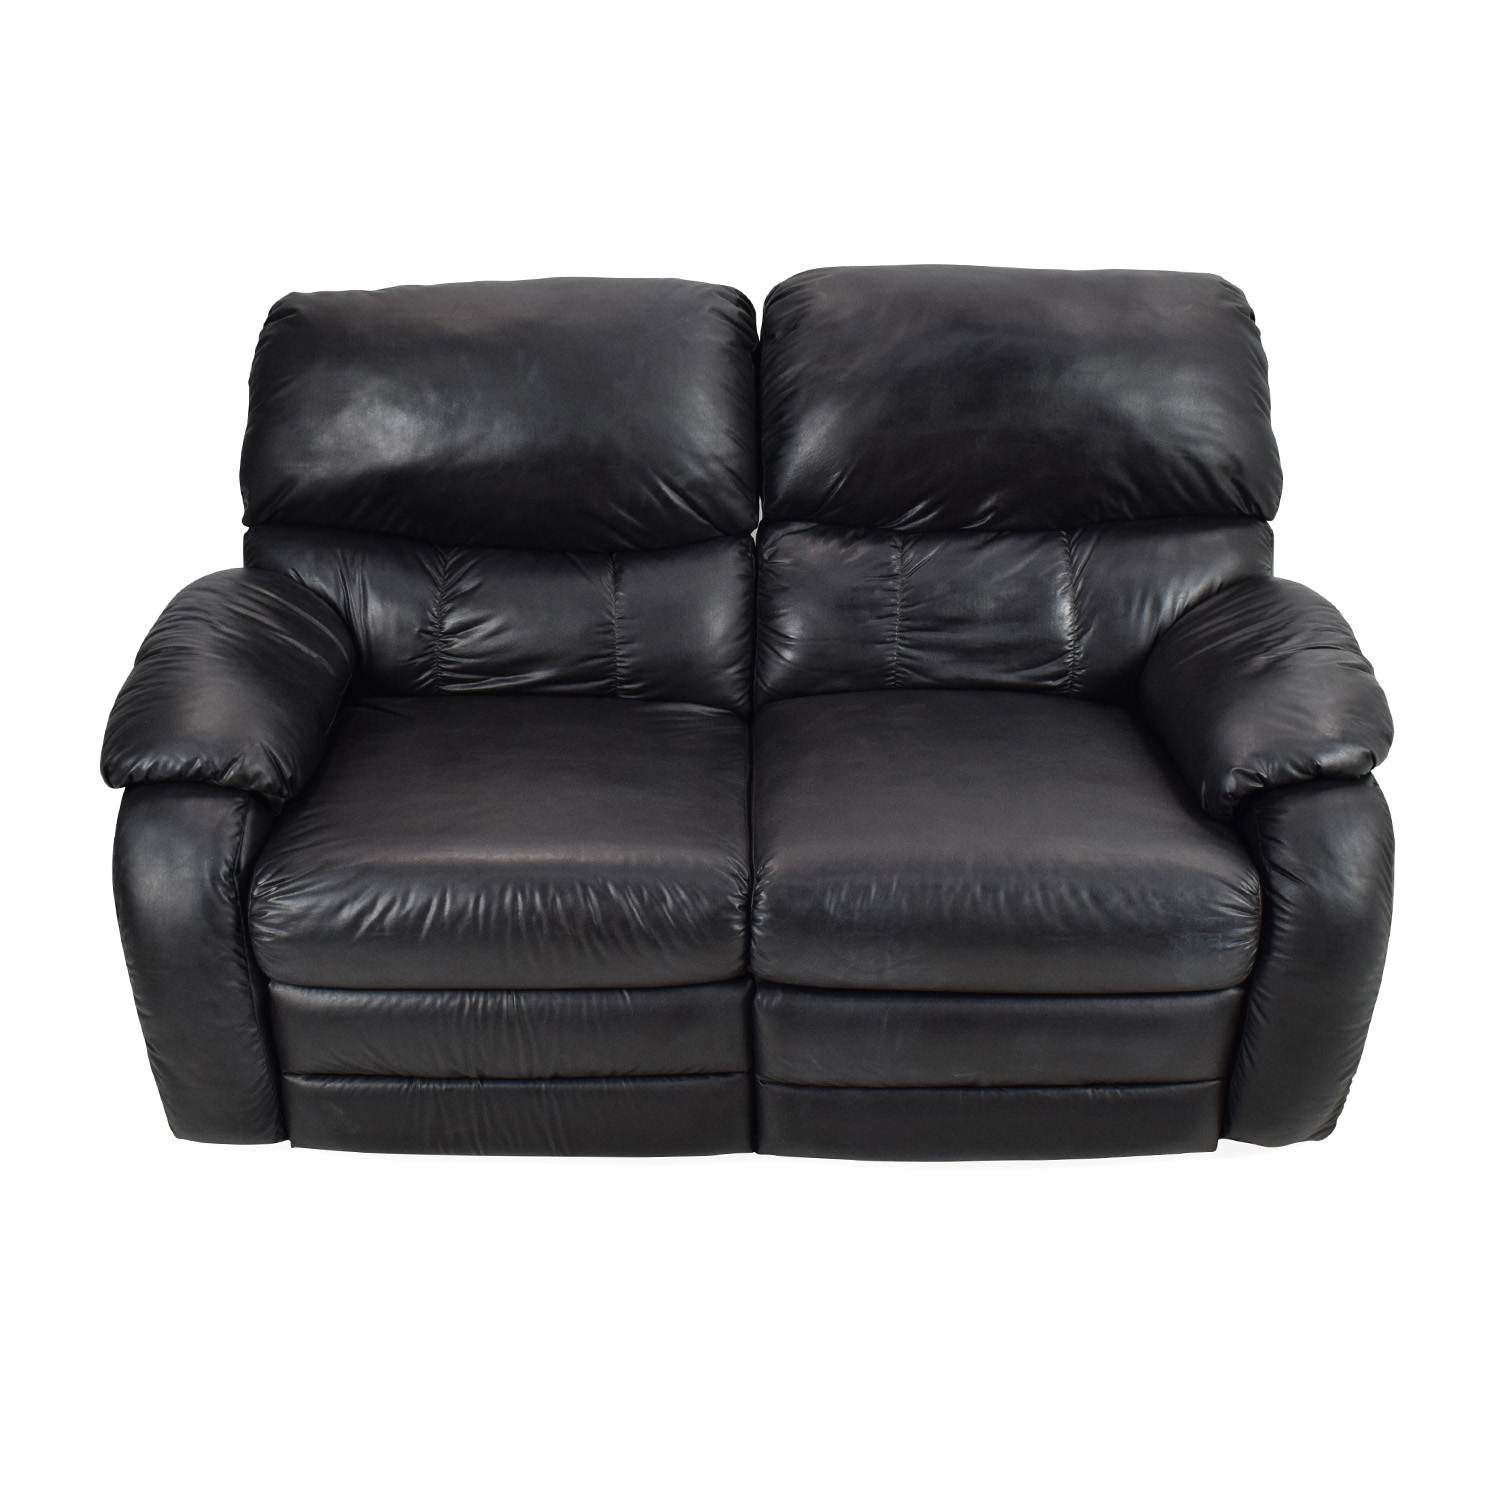 shop Black Leather Reclining 2-Seater